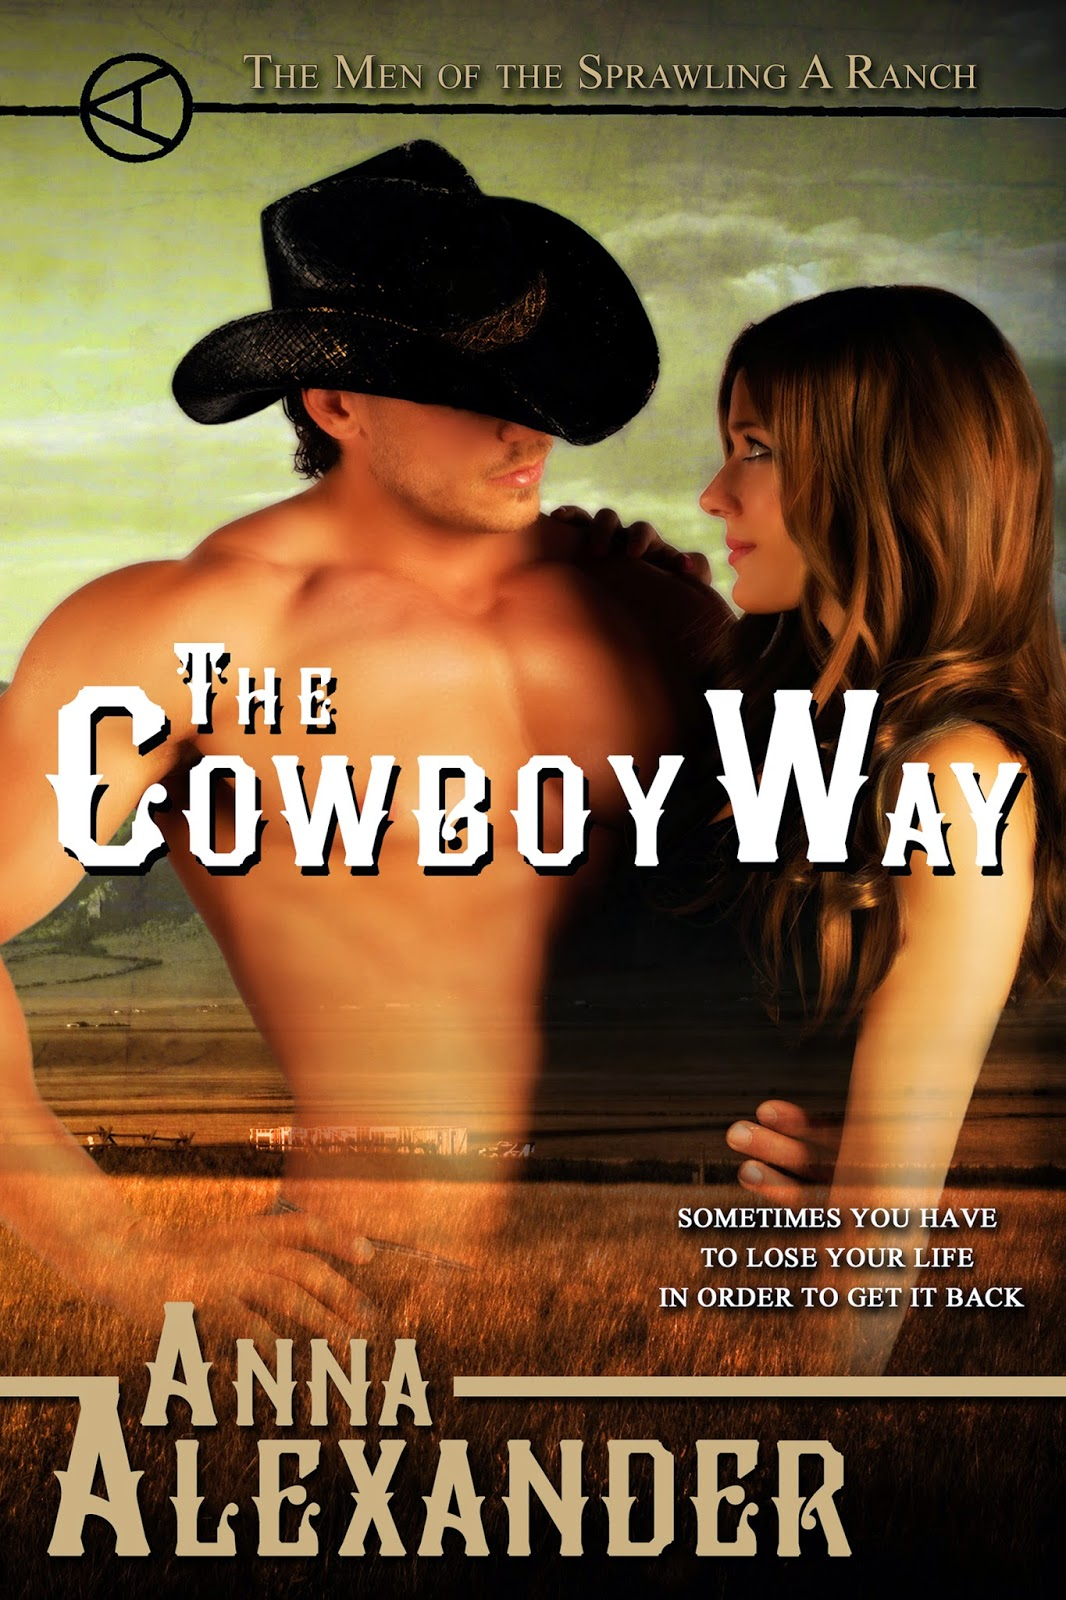 http://www.amazon.com/Cowboy-Way-Sprawling-Ranch-Book-ebook/dp/B00LUVAM2O/ref=sr_1_1?ie=UTF8&qid=1407082349&sr=8-1&keywords=the+cowboy+way+by+Anna+Alexander